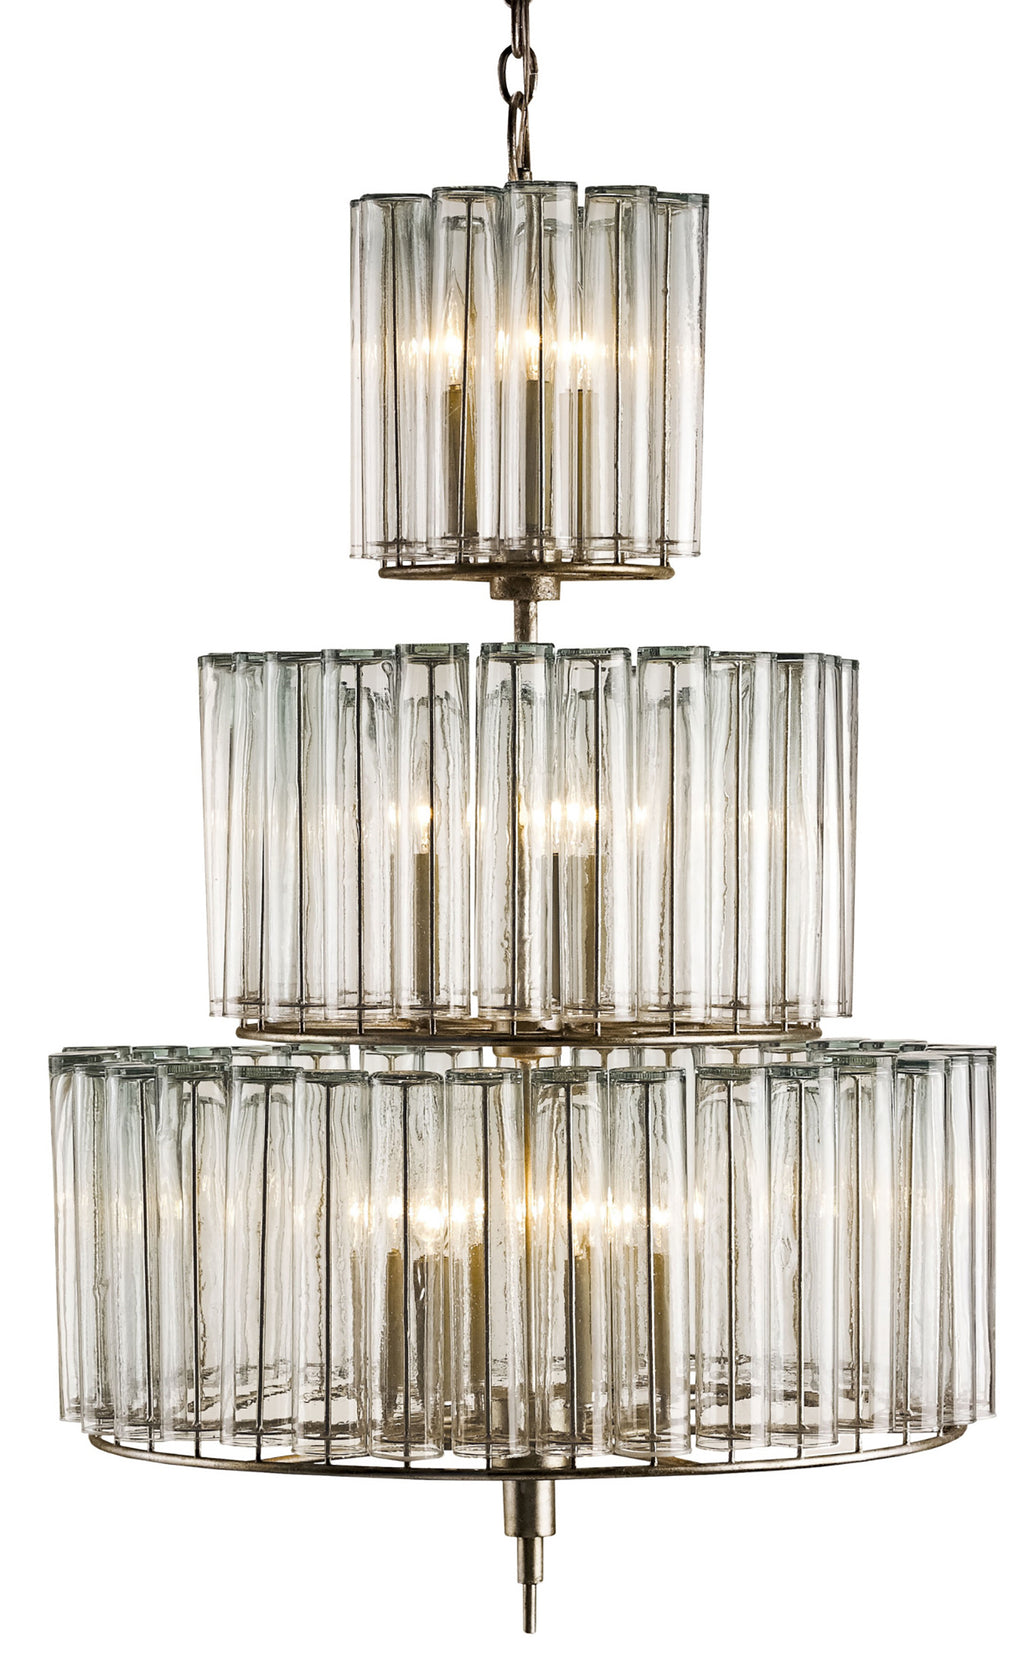 Bevilacqua Medium Chandelier